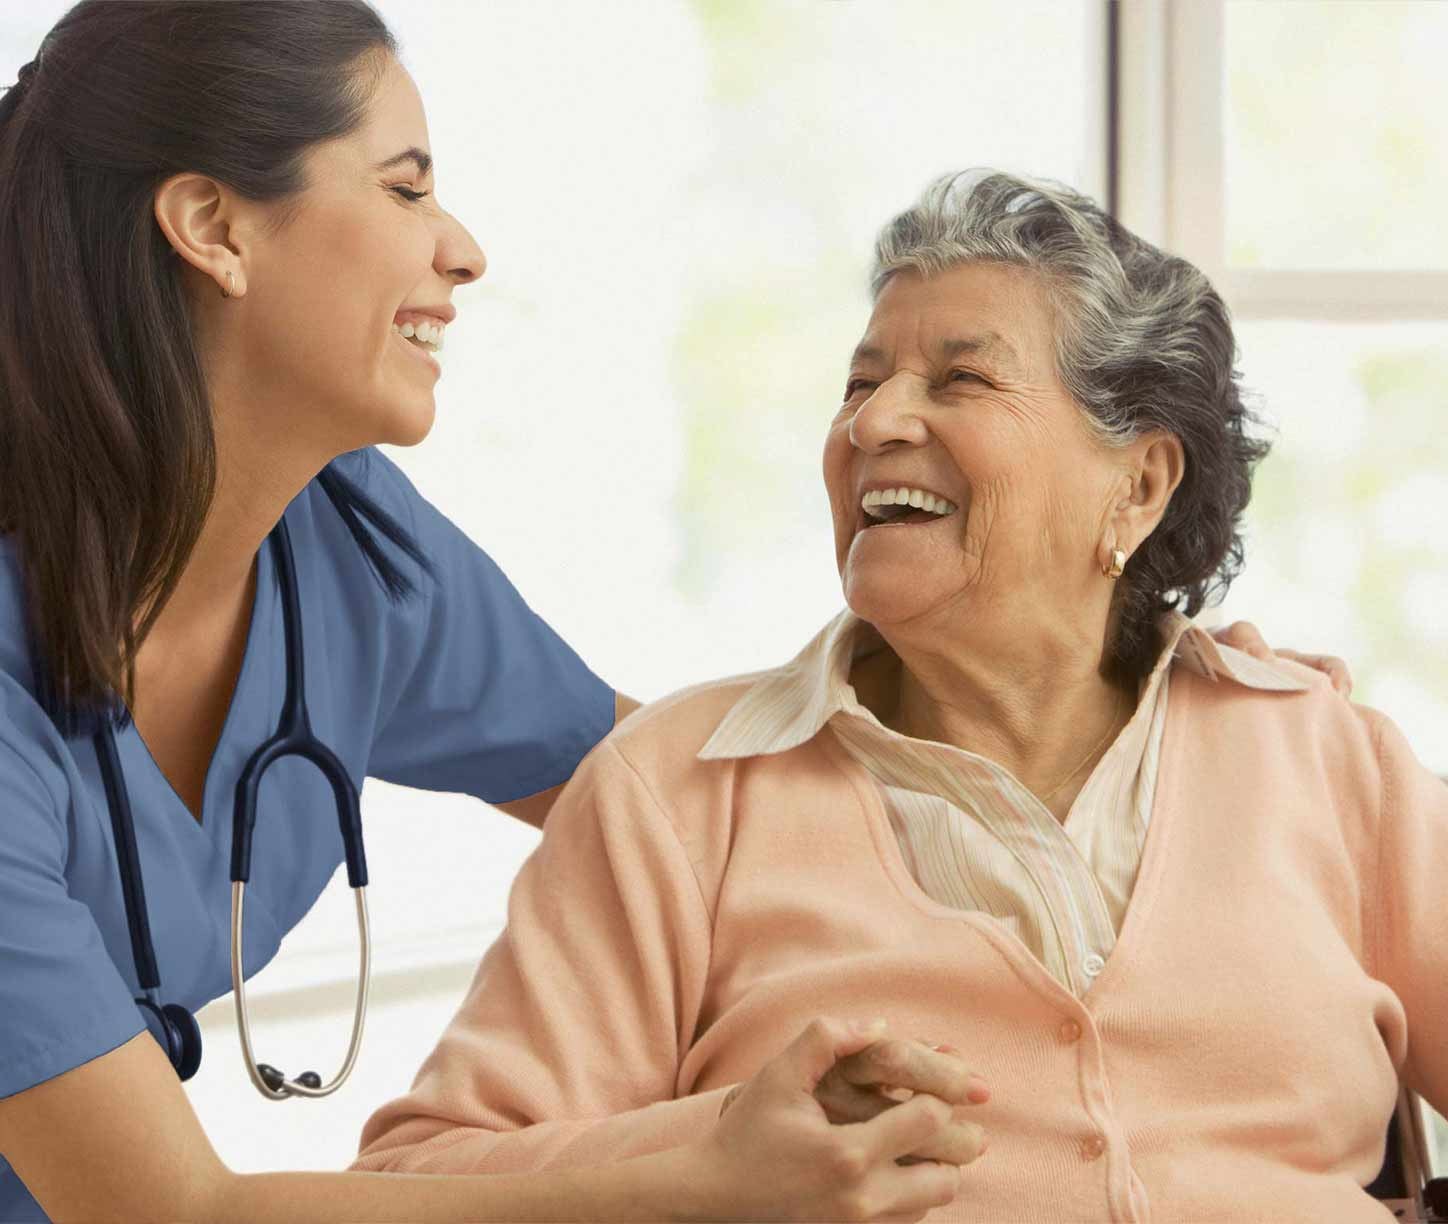 nurse and patient sharing a laugh